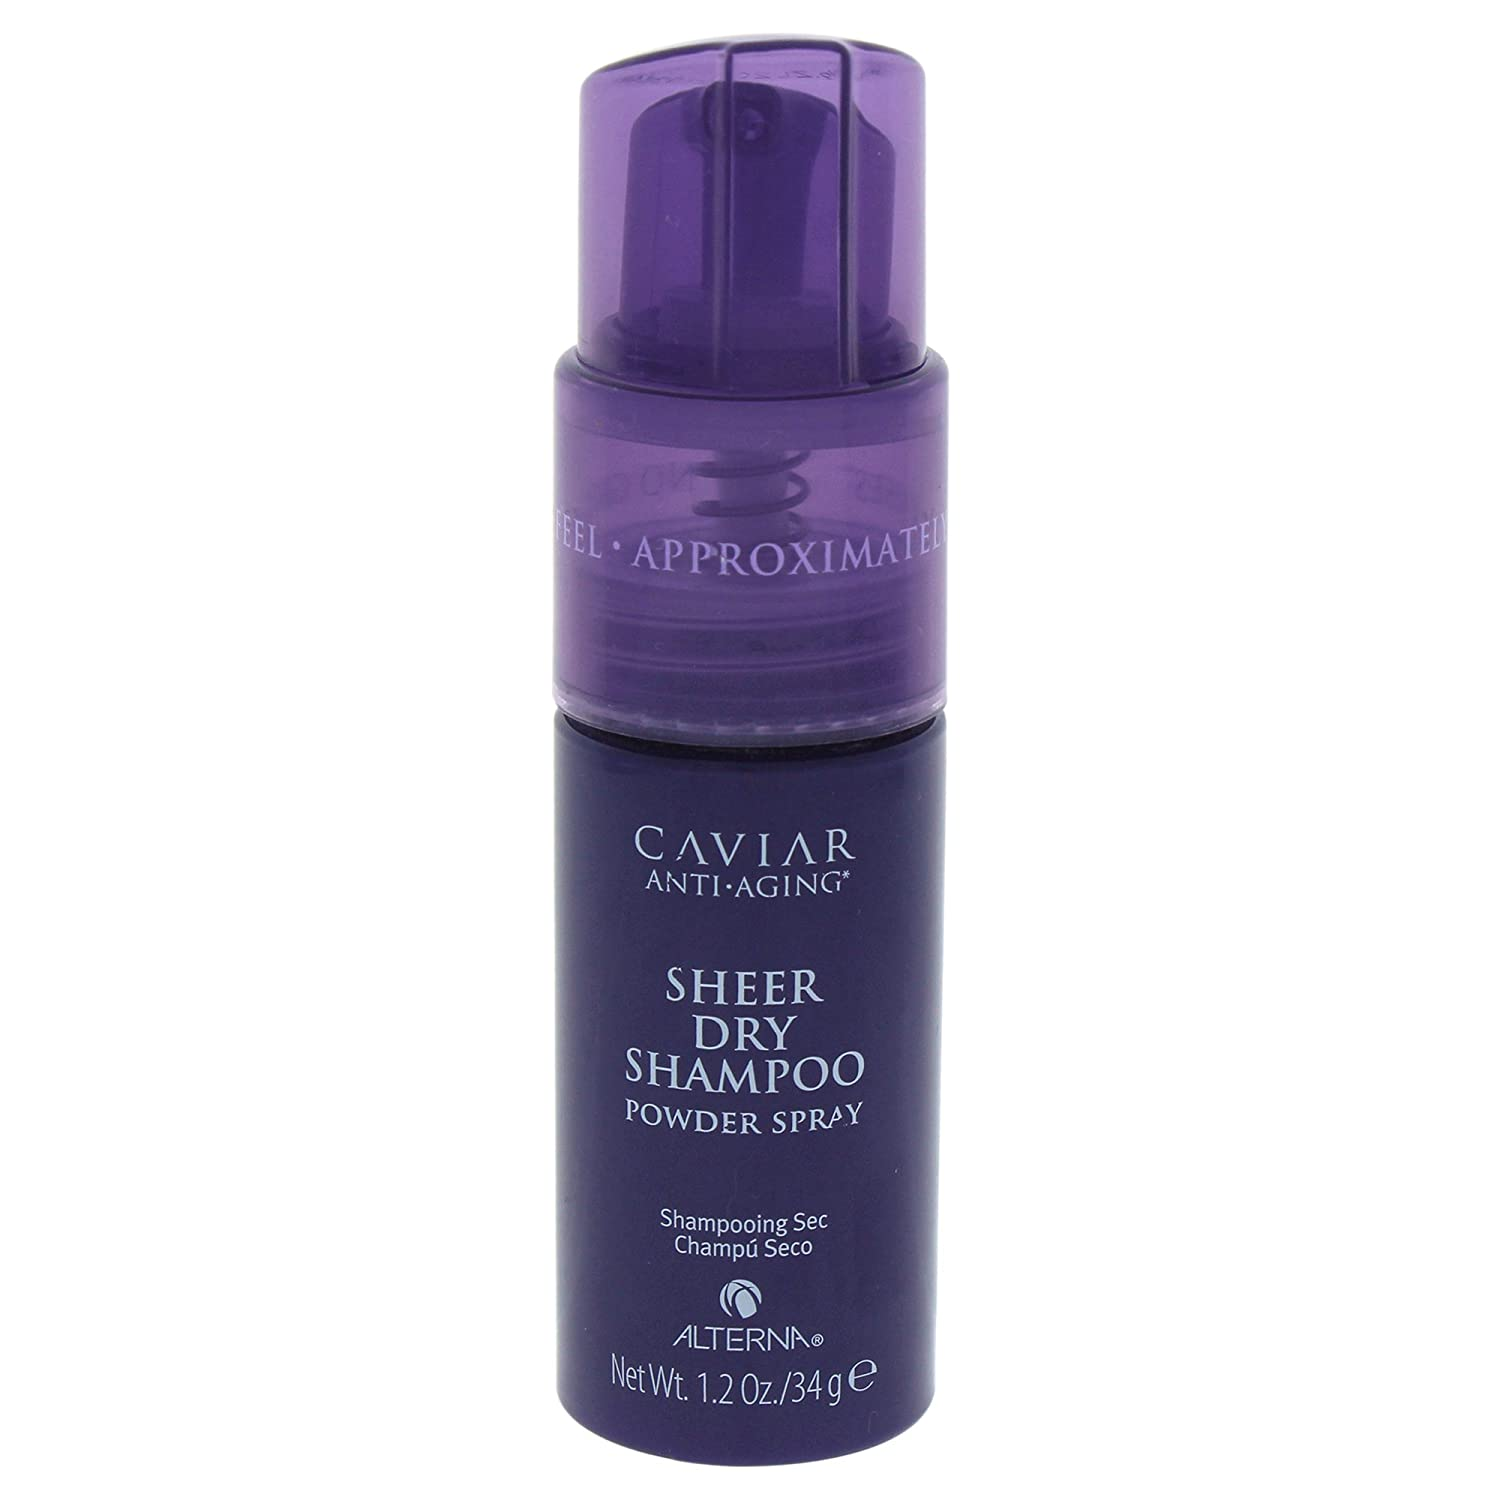 Caviar Anti-Aging Sheer Dry Shampoo, 1.2-Ounce Alterna Haircare B01M4R6ZHW